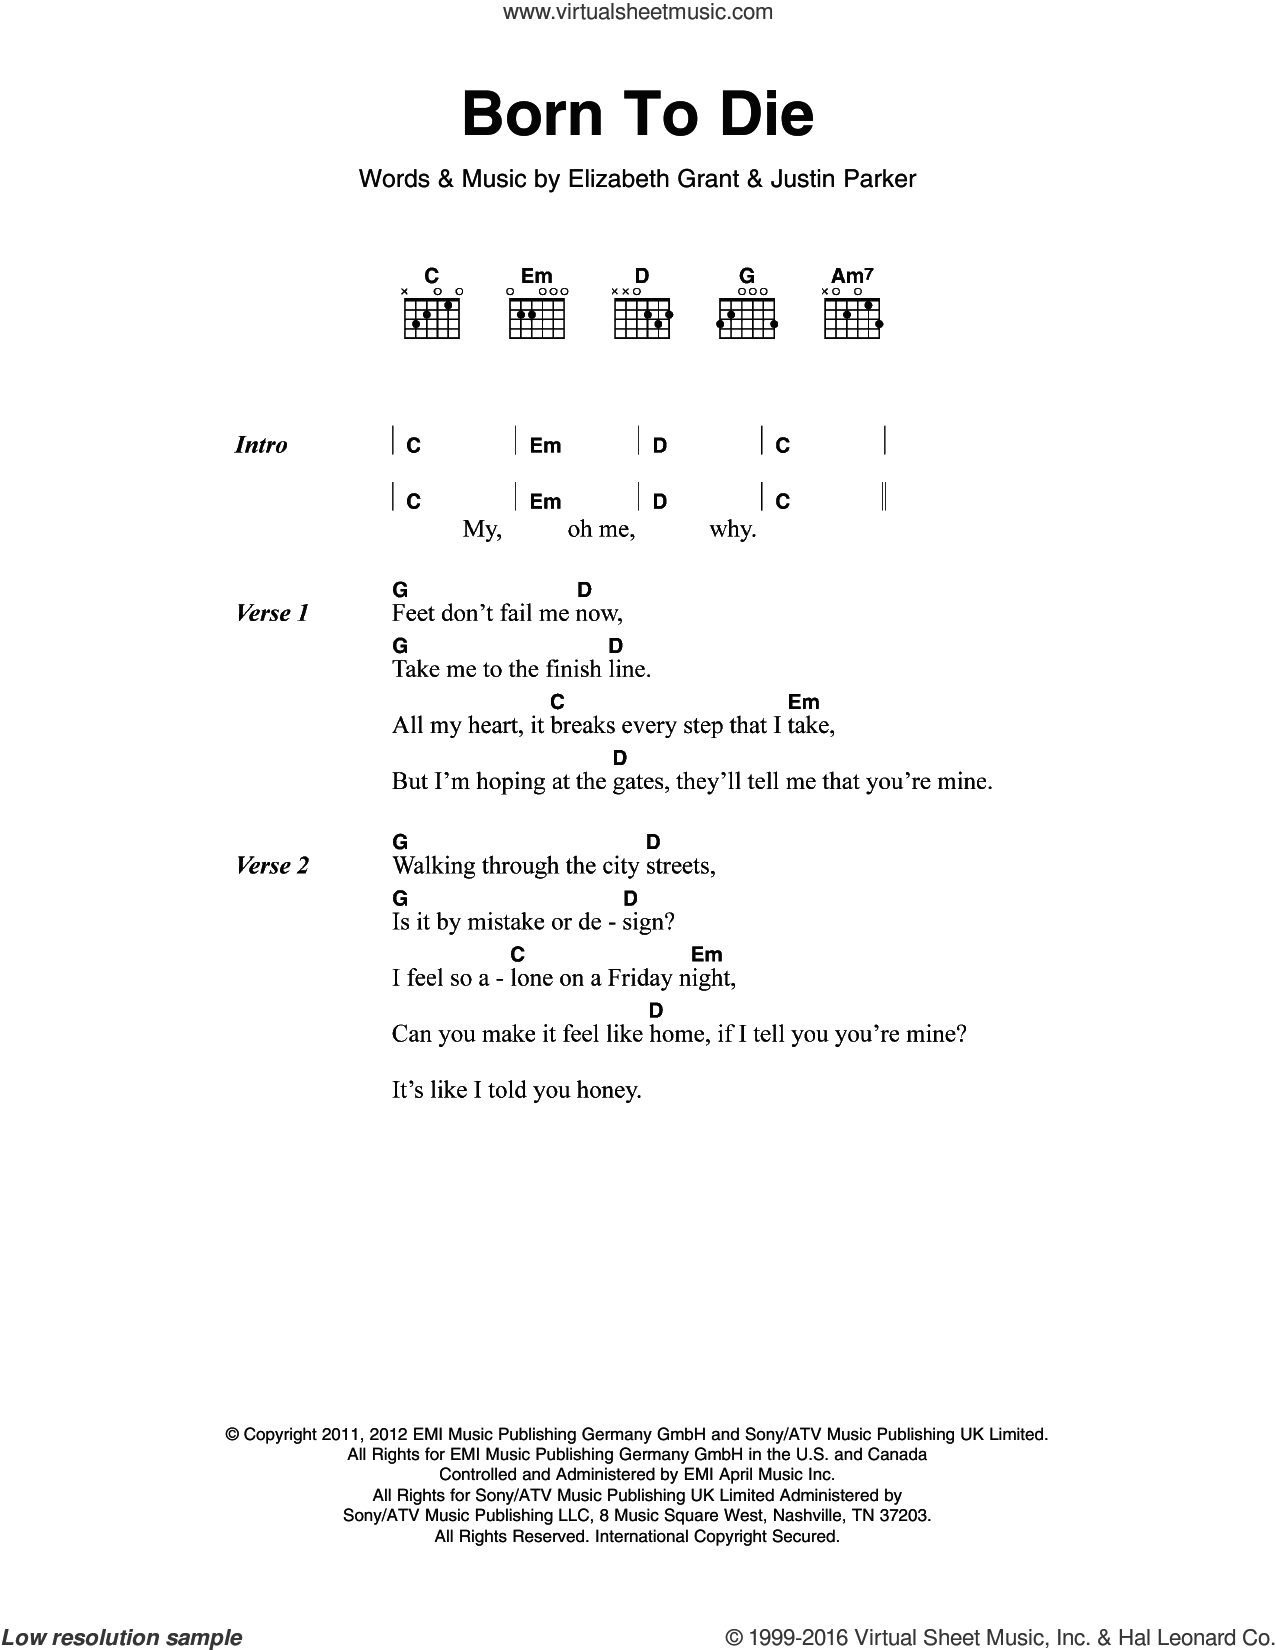 Born To Die sheet music for guitar (chords) by Justin Parker